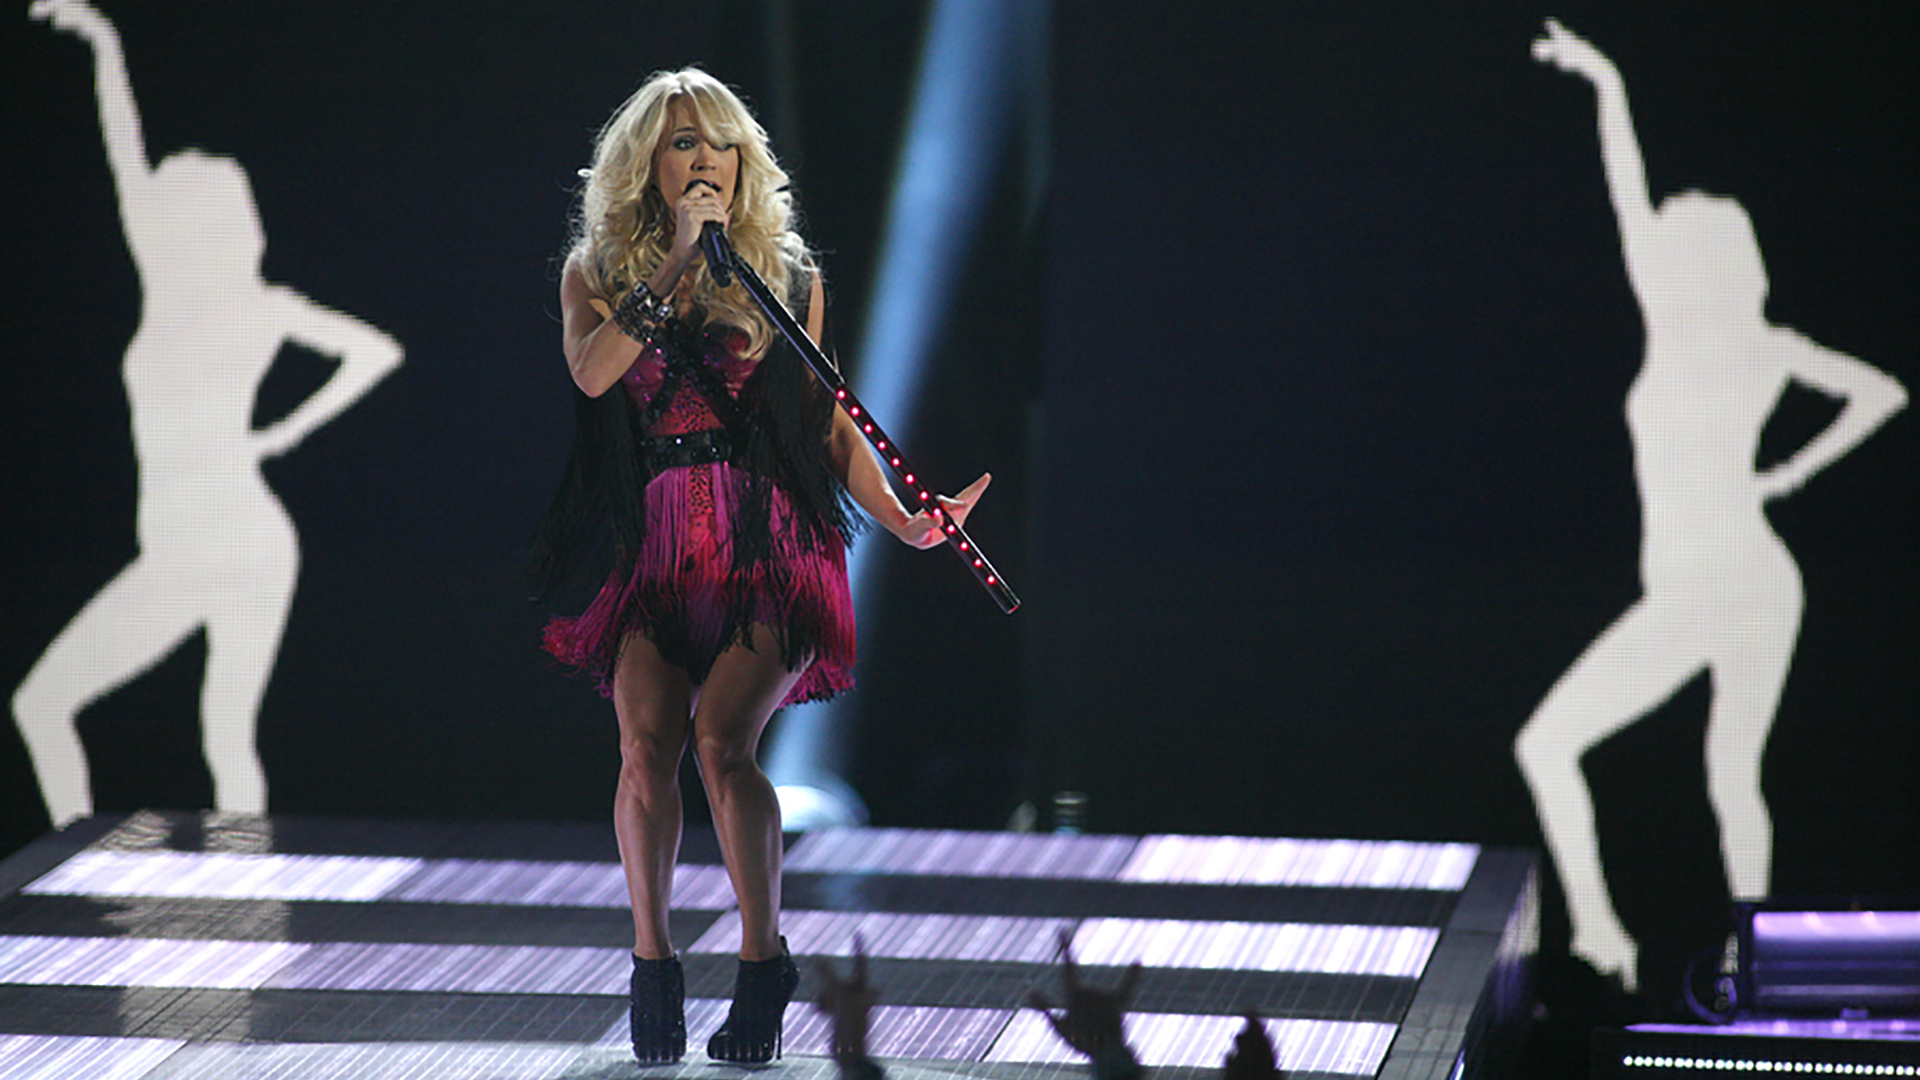 30. Carrie Underwood performs